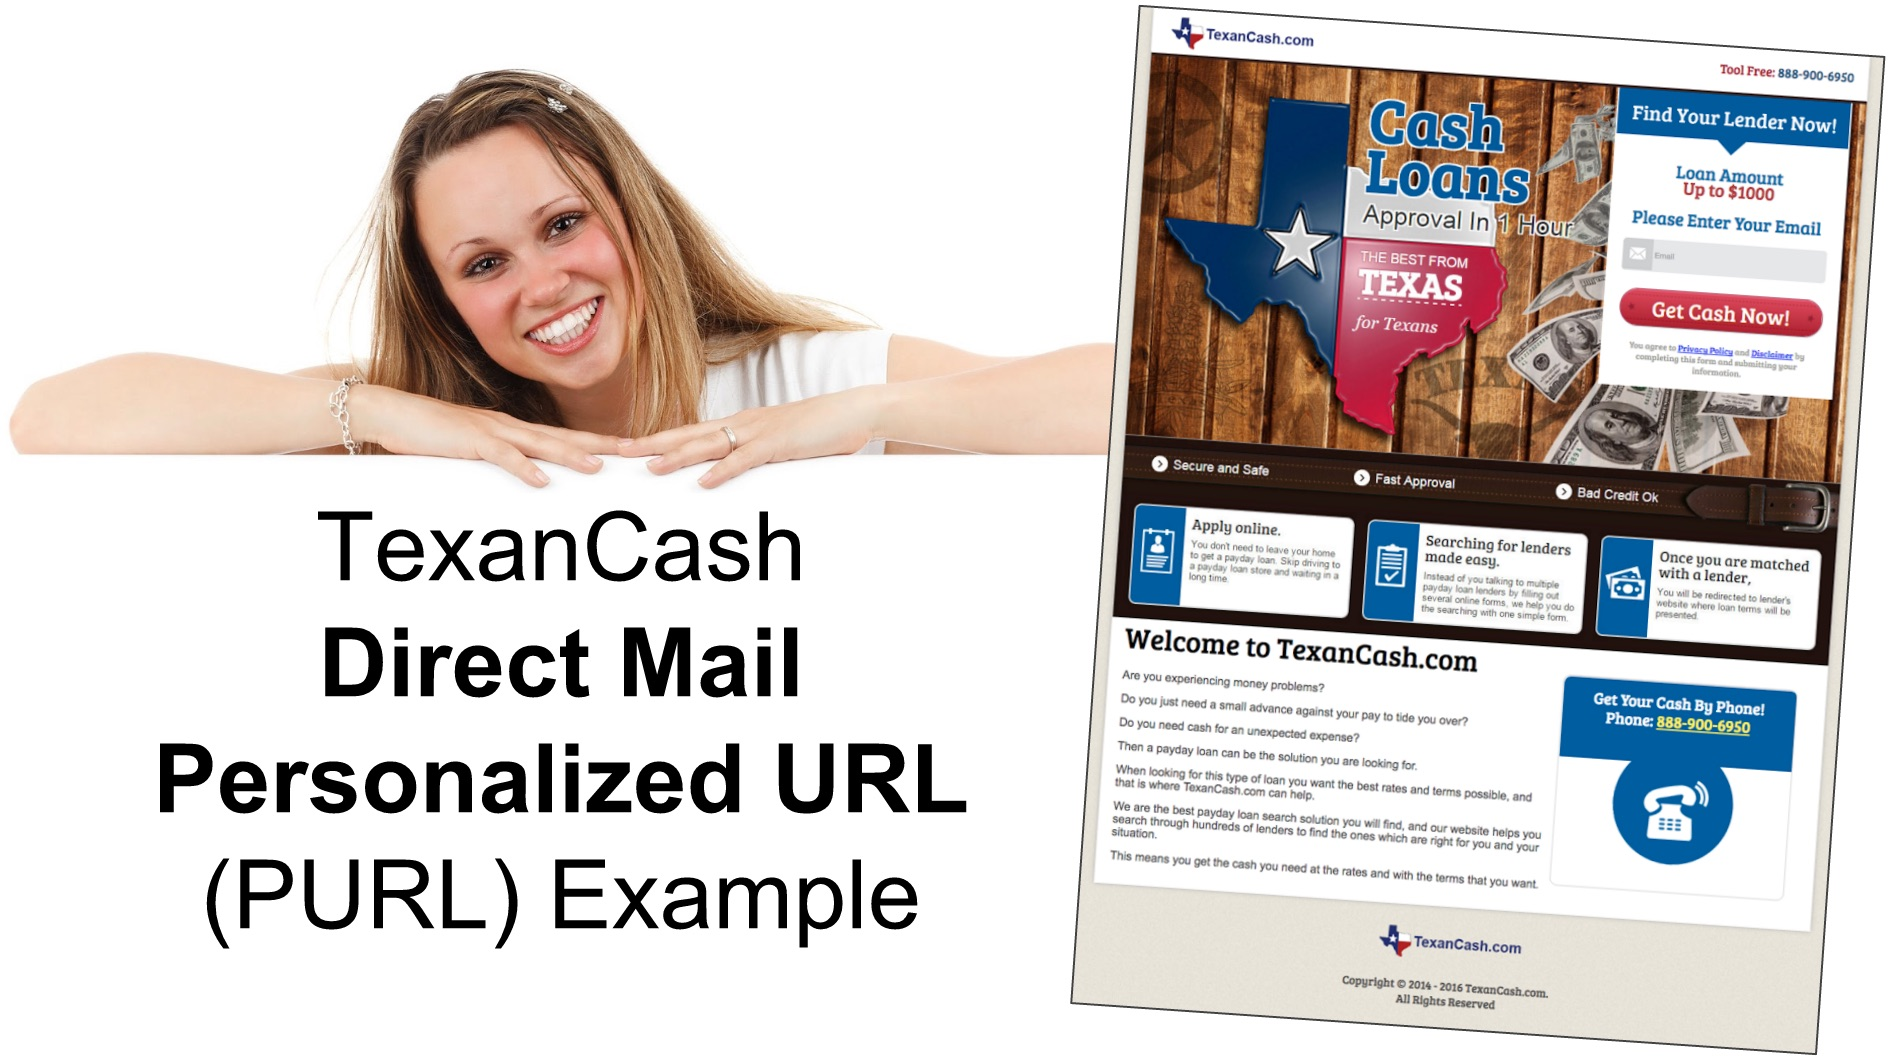 Direct Mail and Personalized URL (PURL) Example for TexanCash